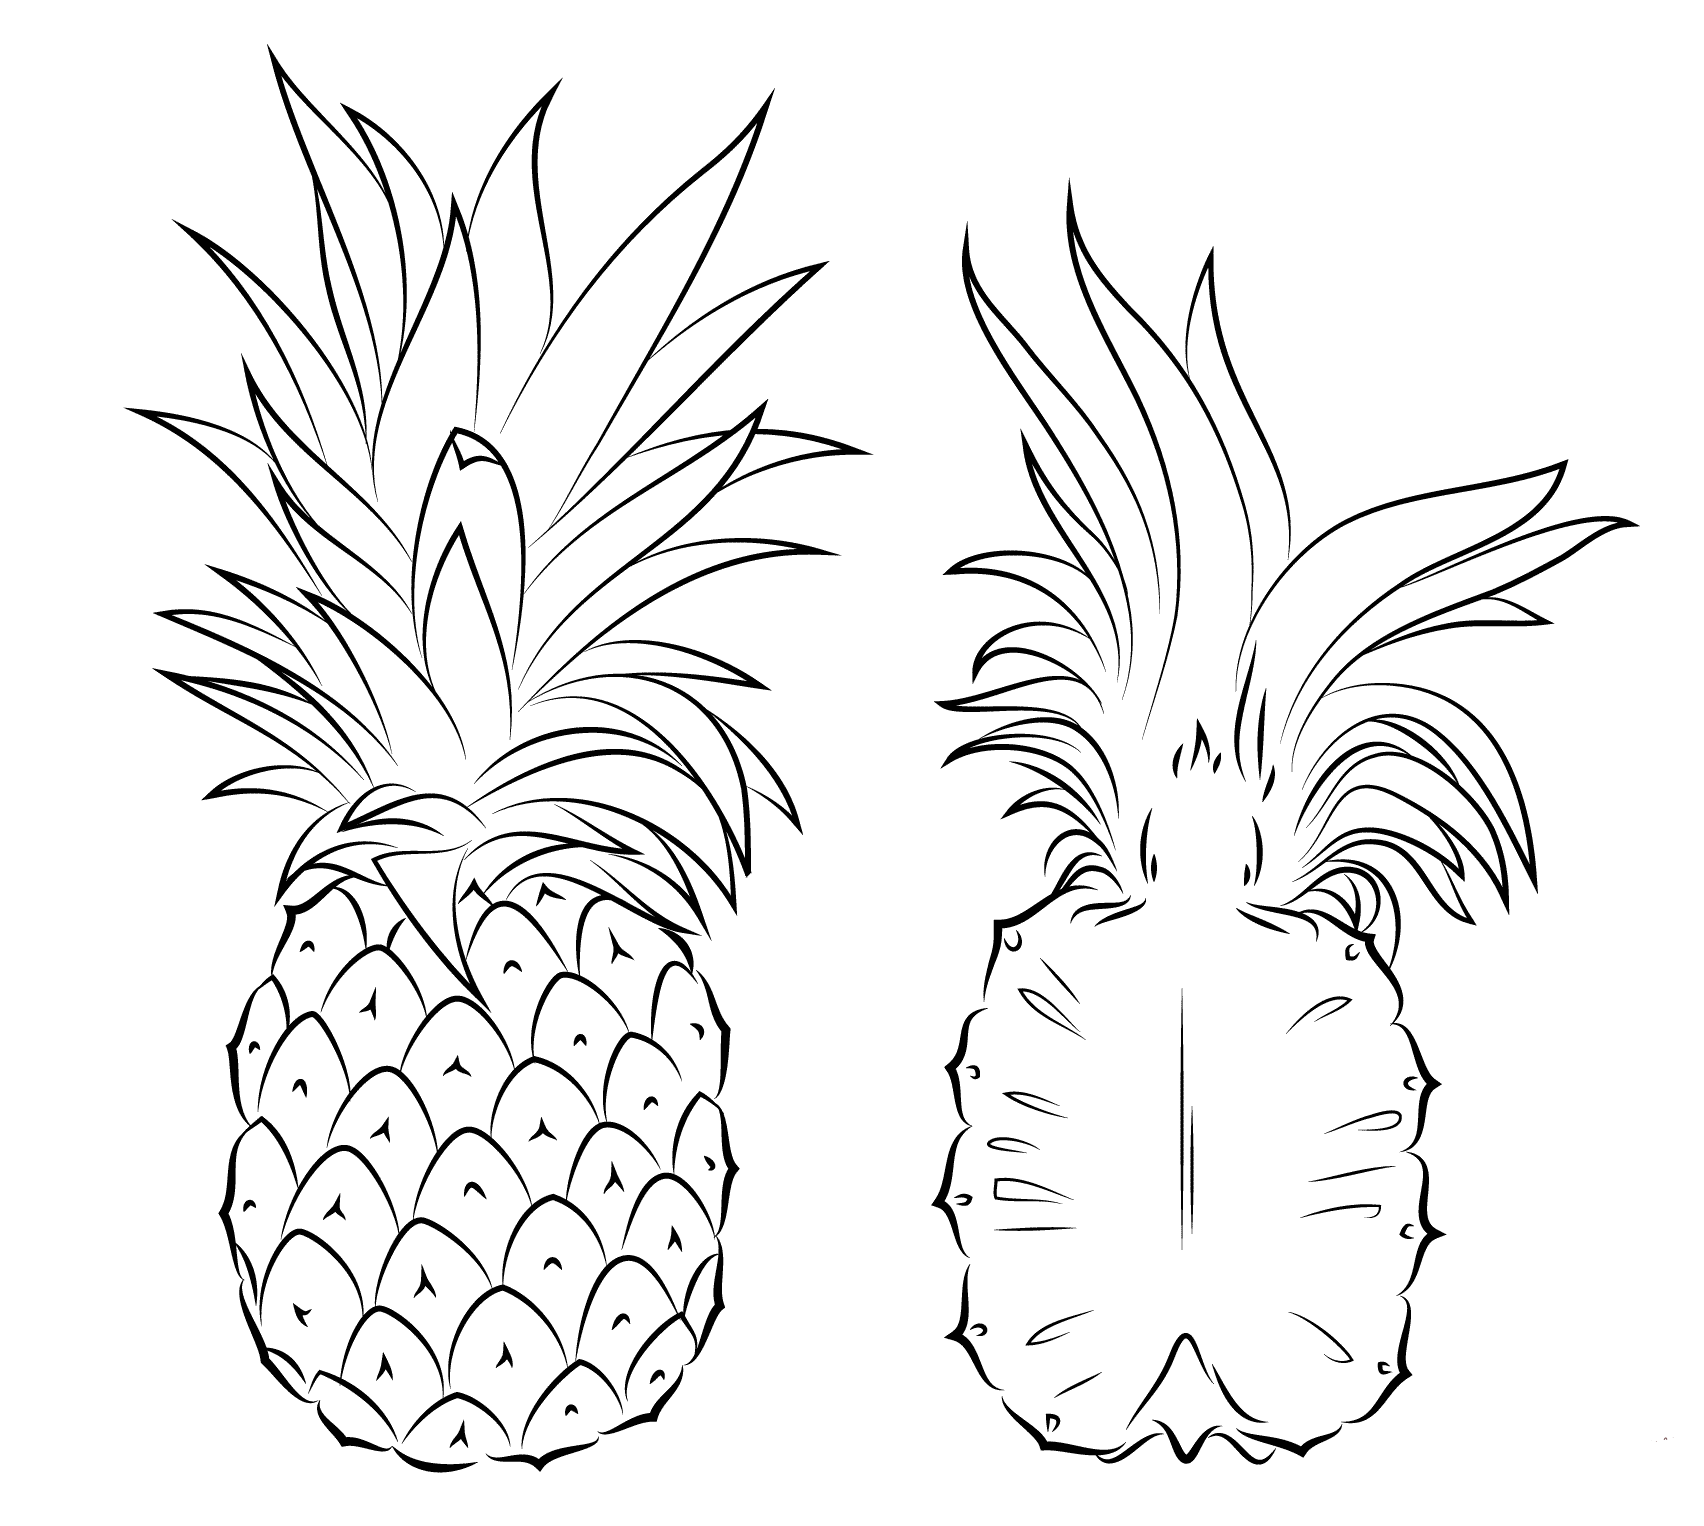 pineapple coloring image pineapple coloring pages coloring pages to download and pineapple image coloring